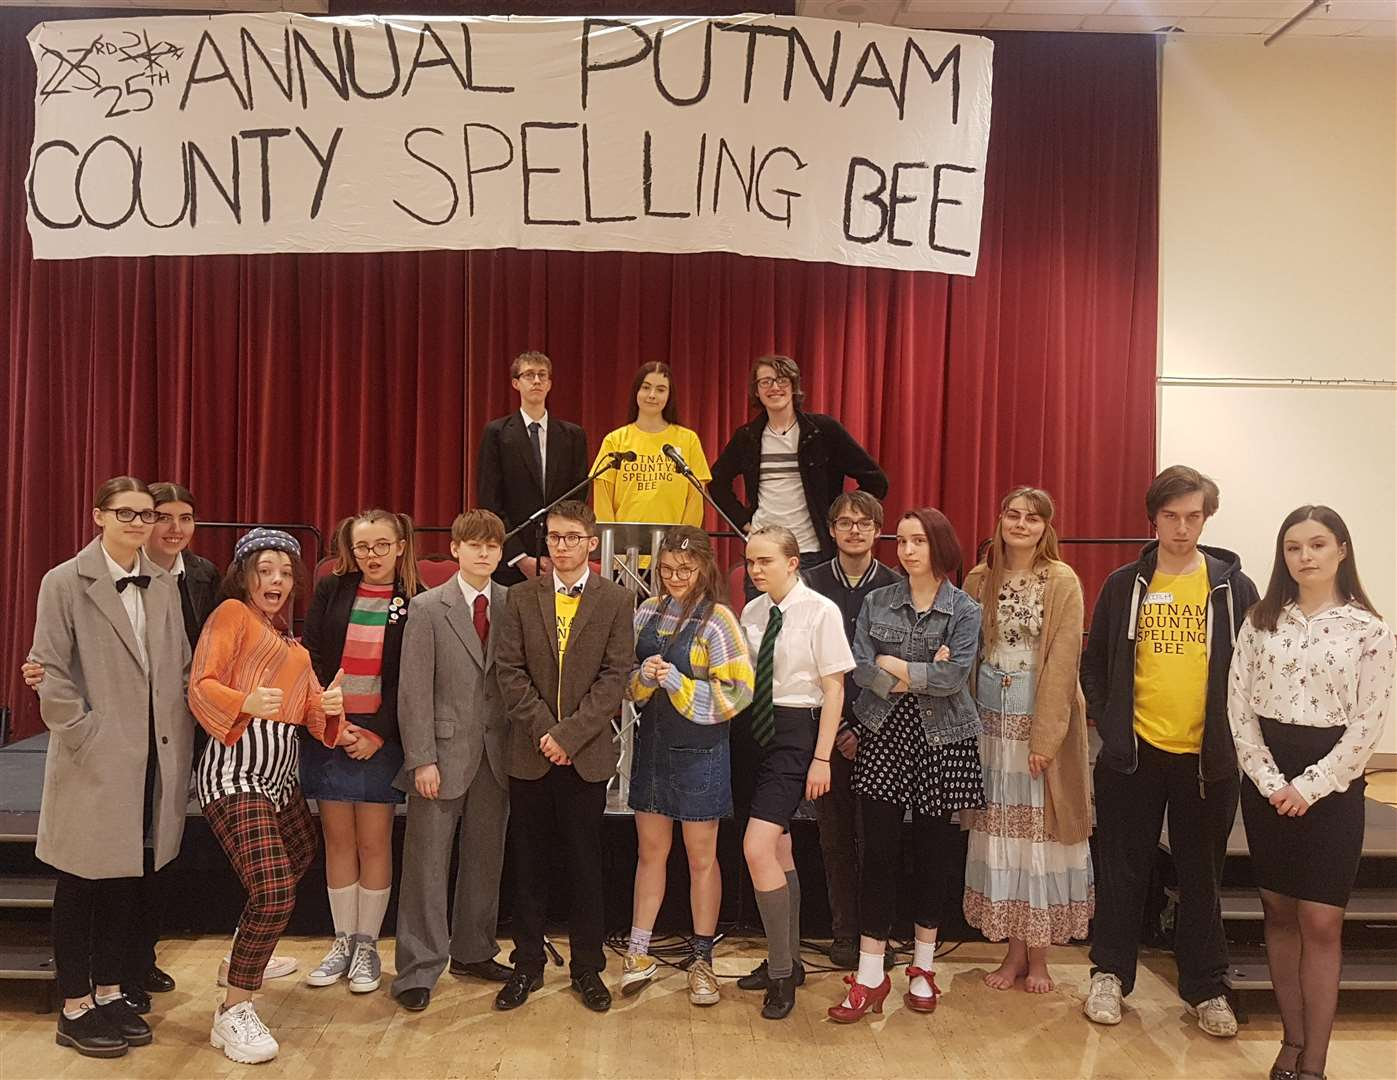 The cast of Act II's musical, The 25th Annual Putnam County Spelling Bee, at South Holland Centre, Spalding. Photo by Karl Gernert. (7226167)